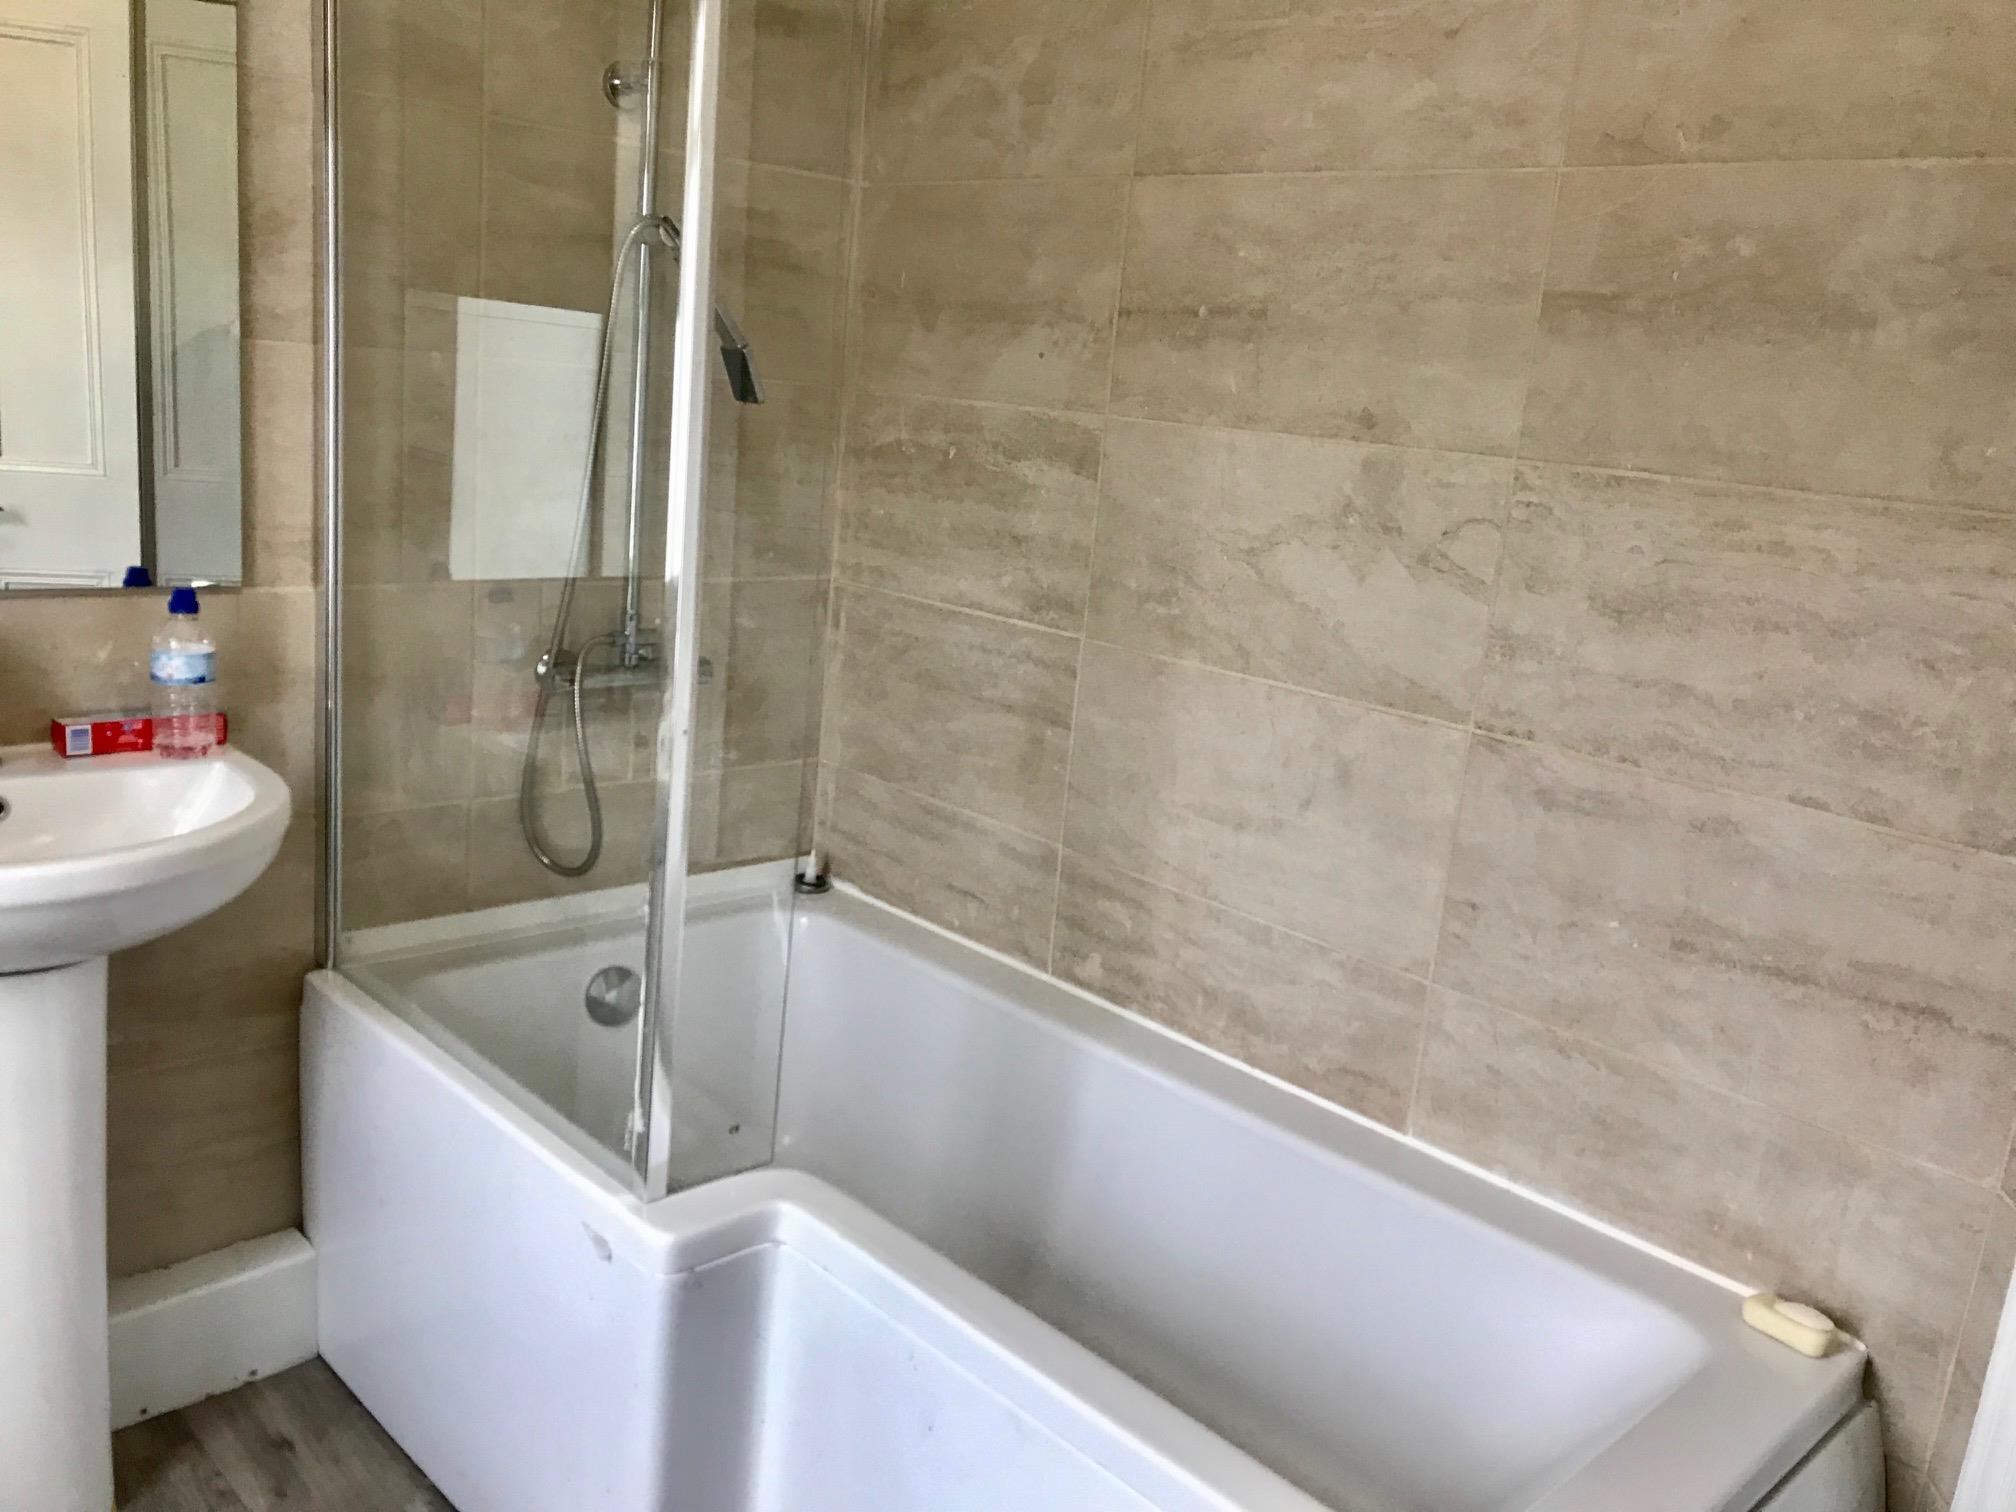 1 room in Worthing, Worthing, BN11 1LX RoomsLocal image